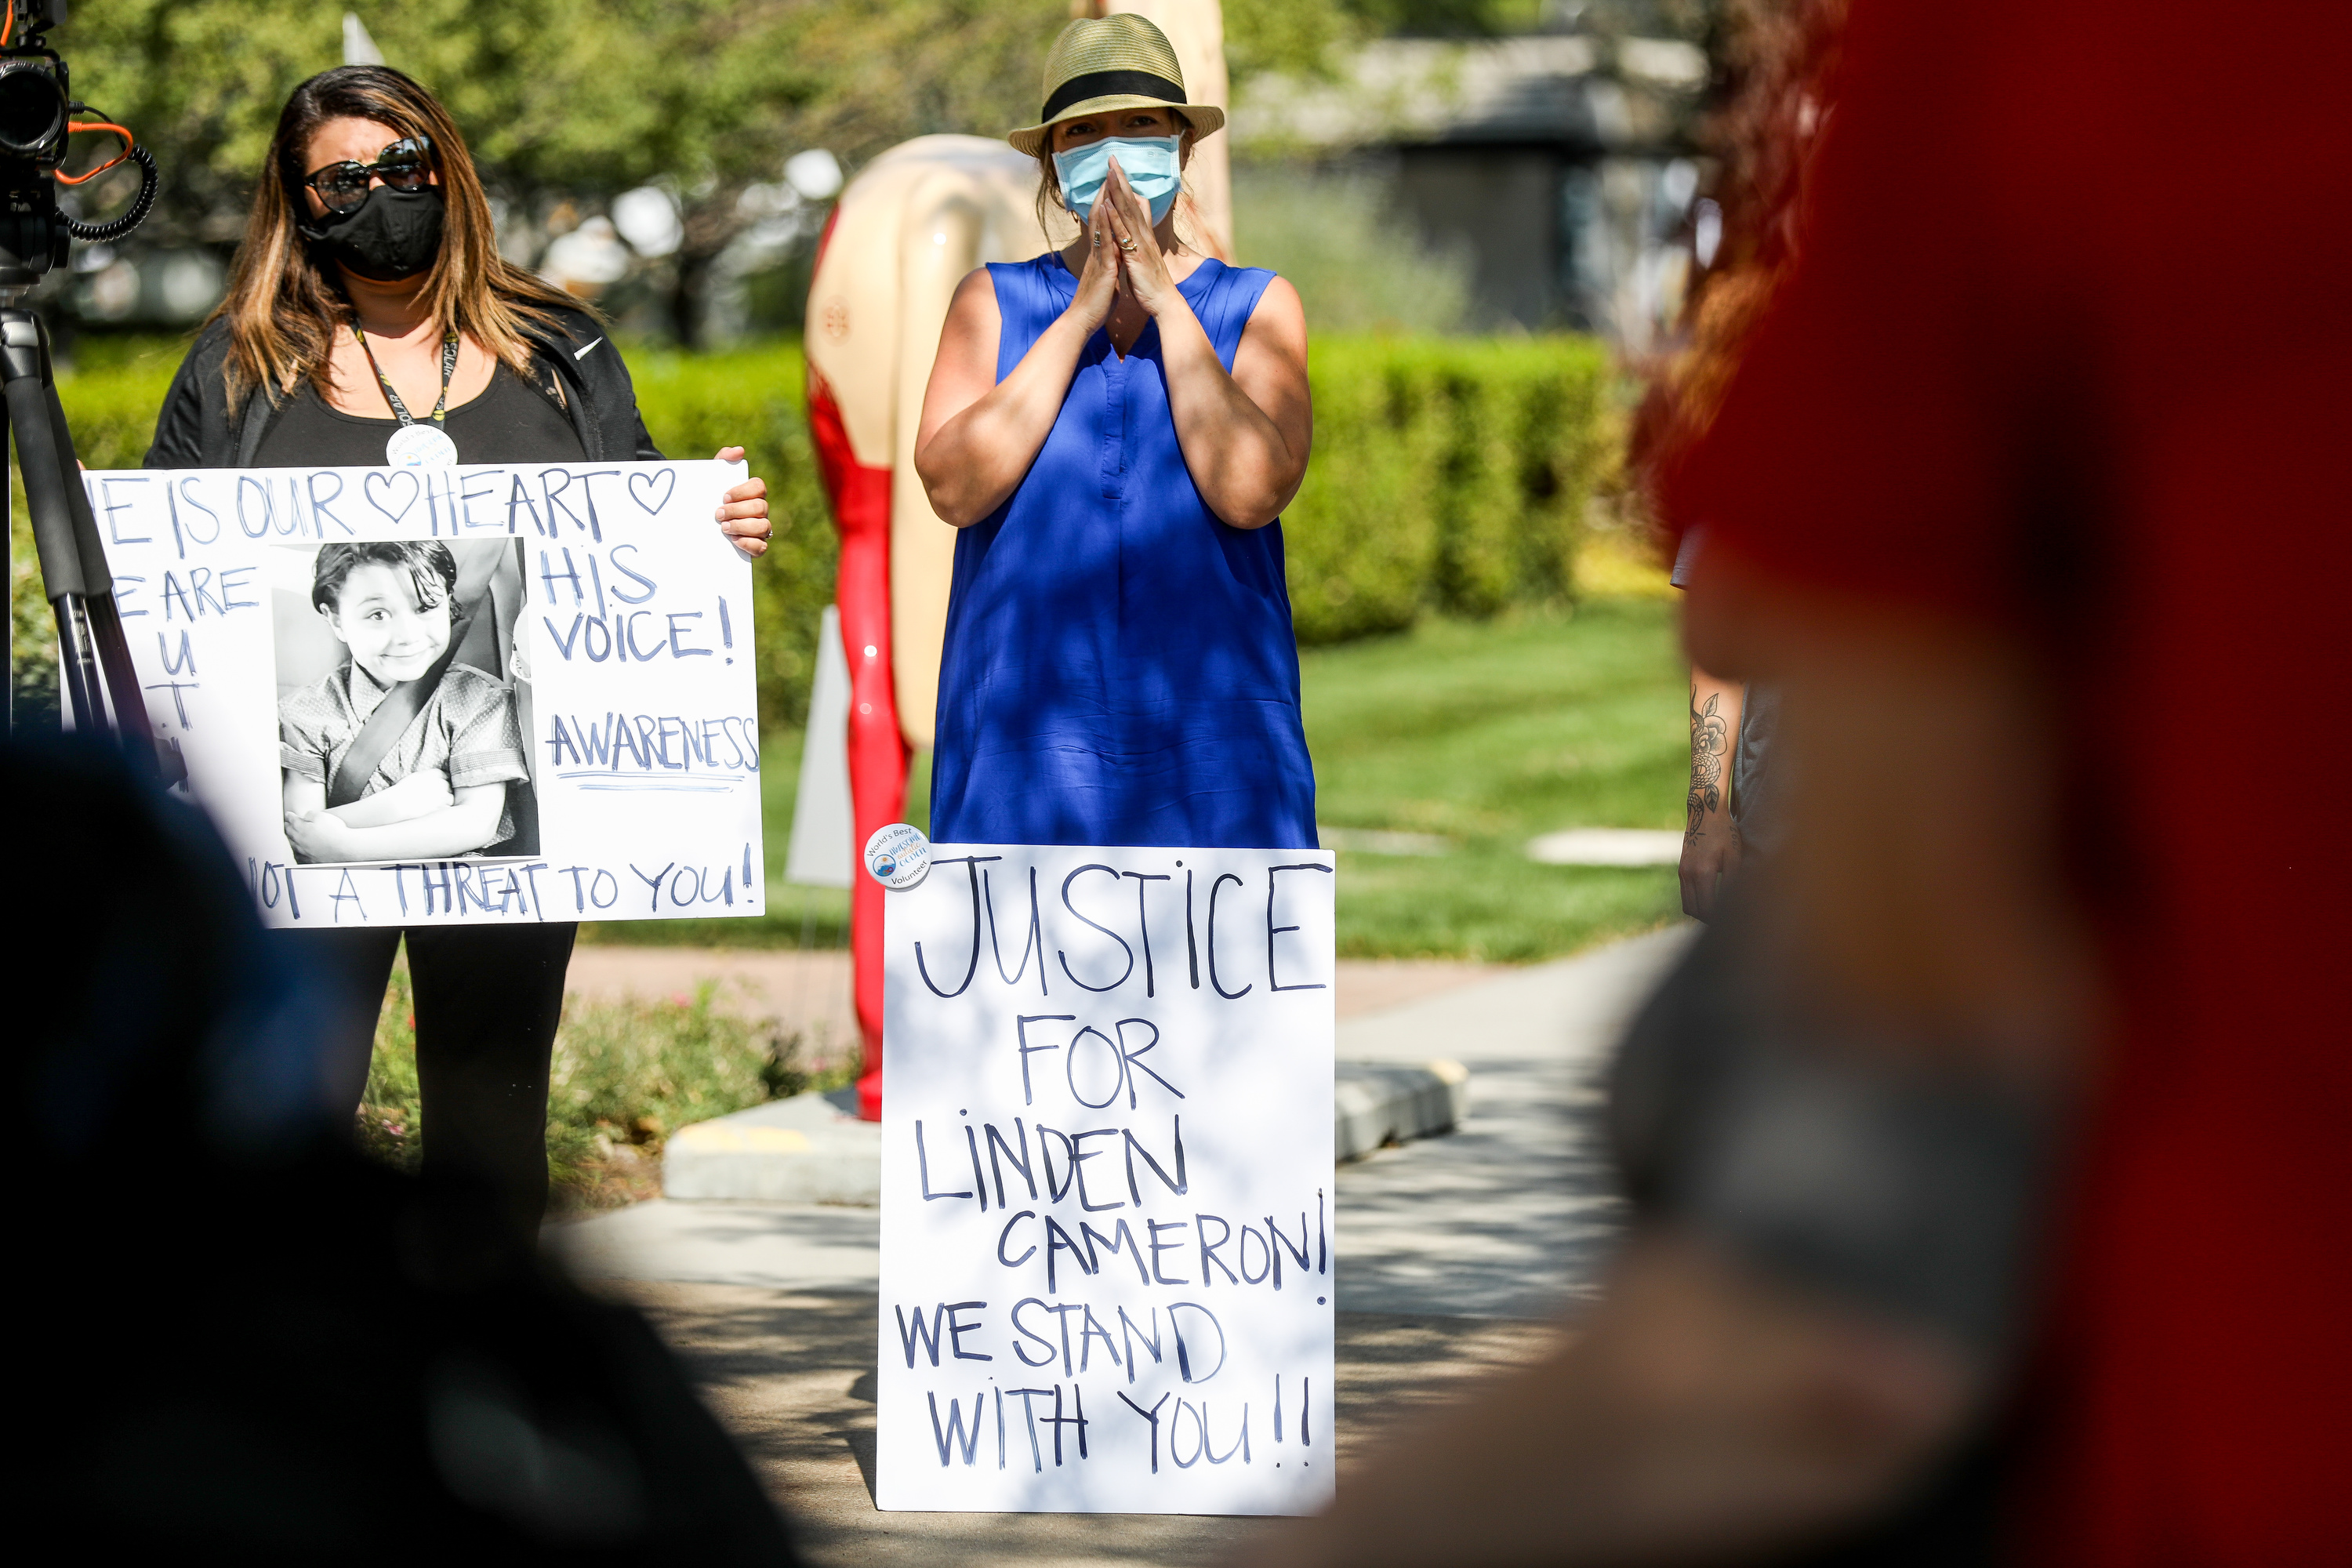 Amanda Funk and Lisa Hamby attend a rally outside the Ogden Municipal Building in Ogden on Saturday, Sept. 12, 2020. People gathered to protest and call attention to the shooting of Linden Cameron, a 13-year-old with Asperger's syndrome who was shot by police in Salt Lake City.